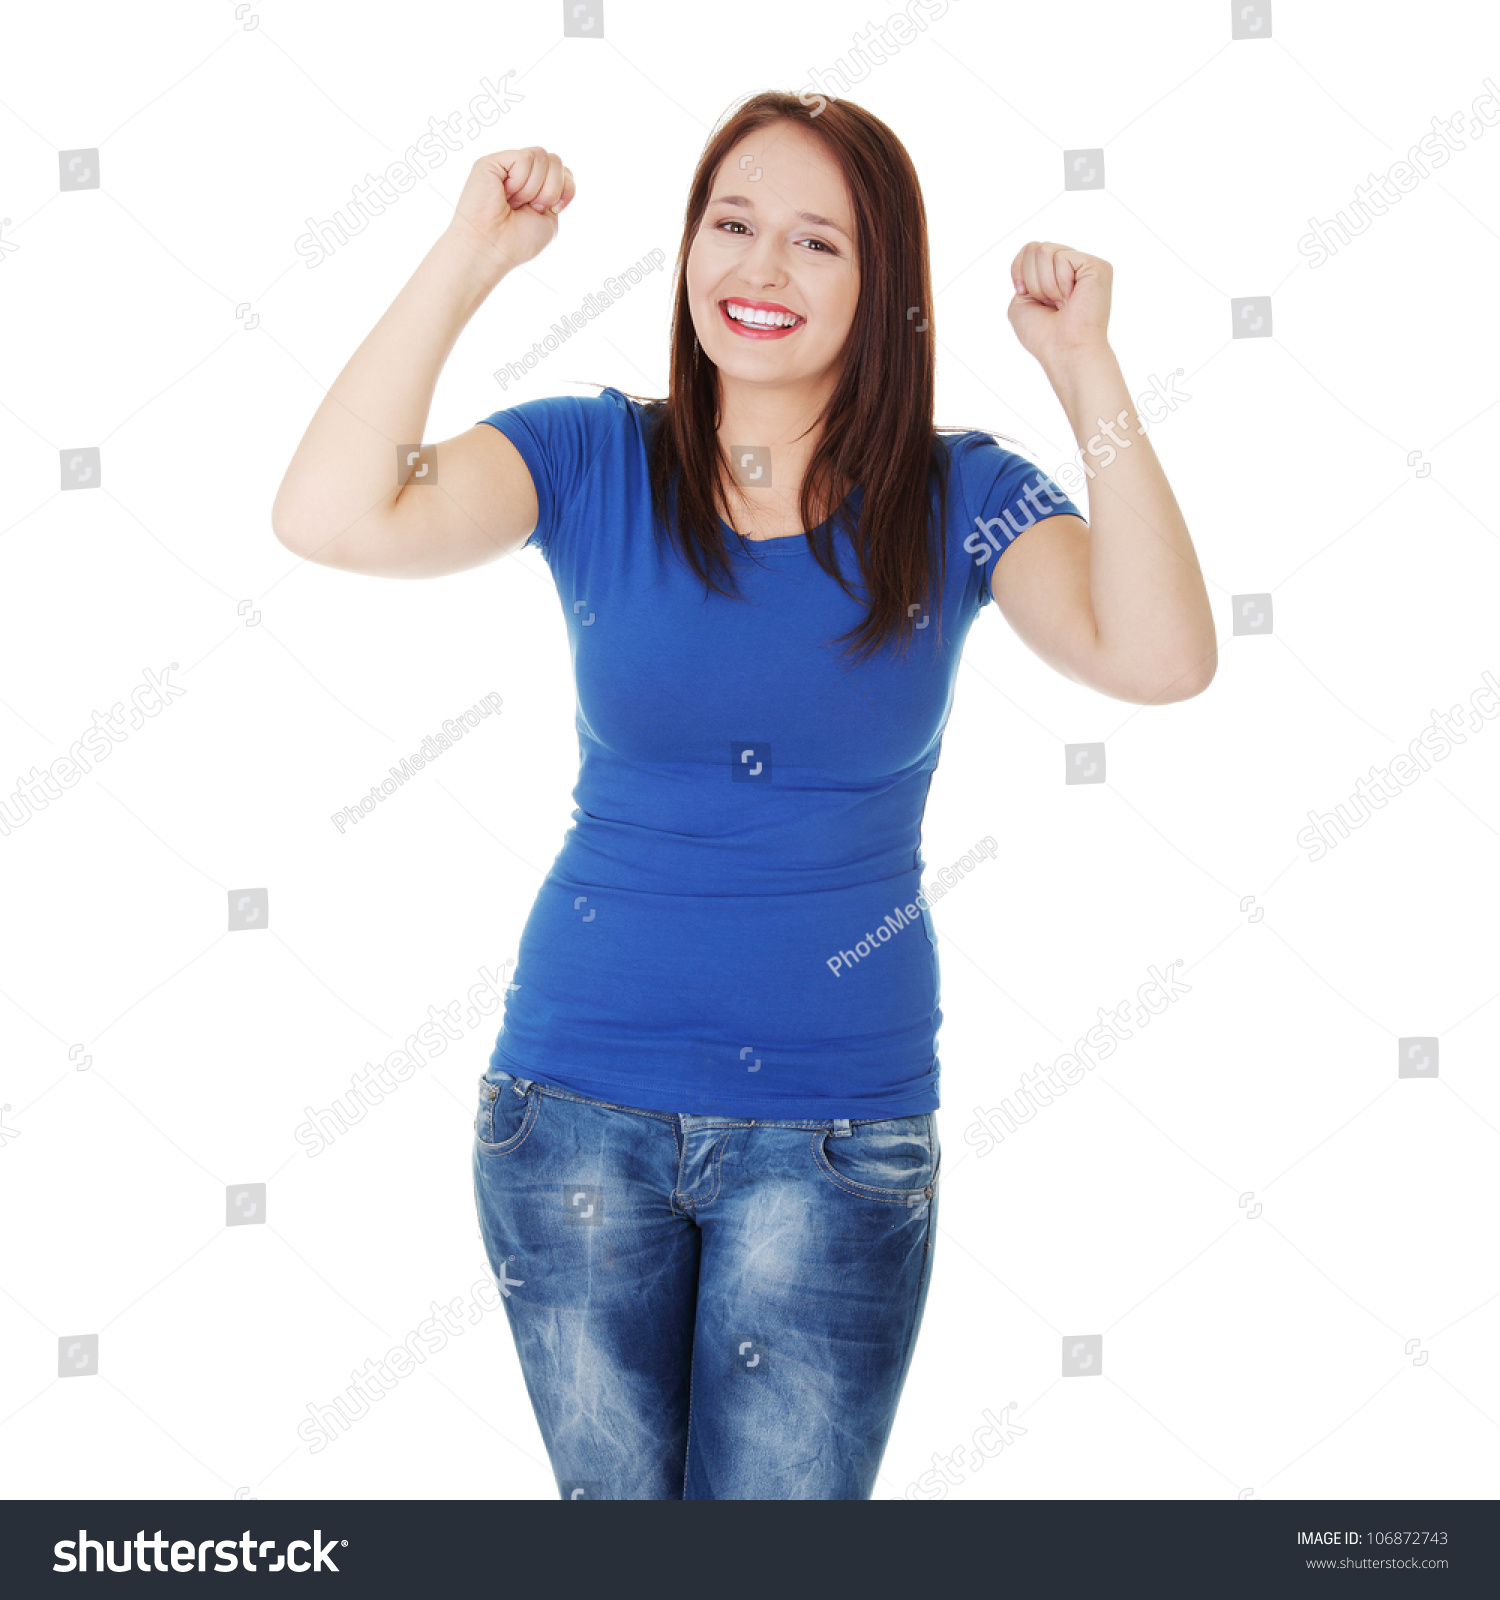 Happy Woman Wearing Jeans Blue Tshirt Stock Photo 106872743 - Shutterstock